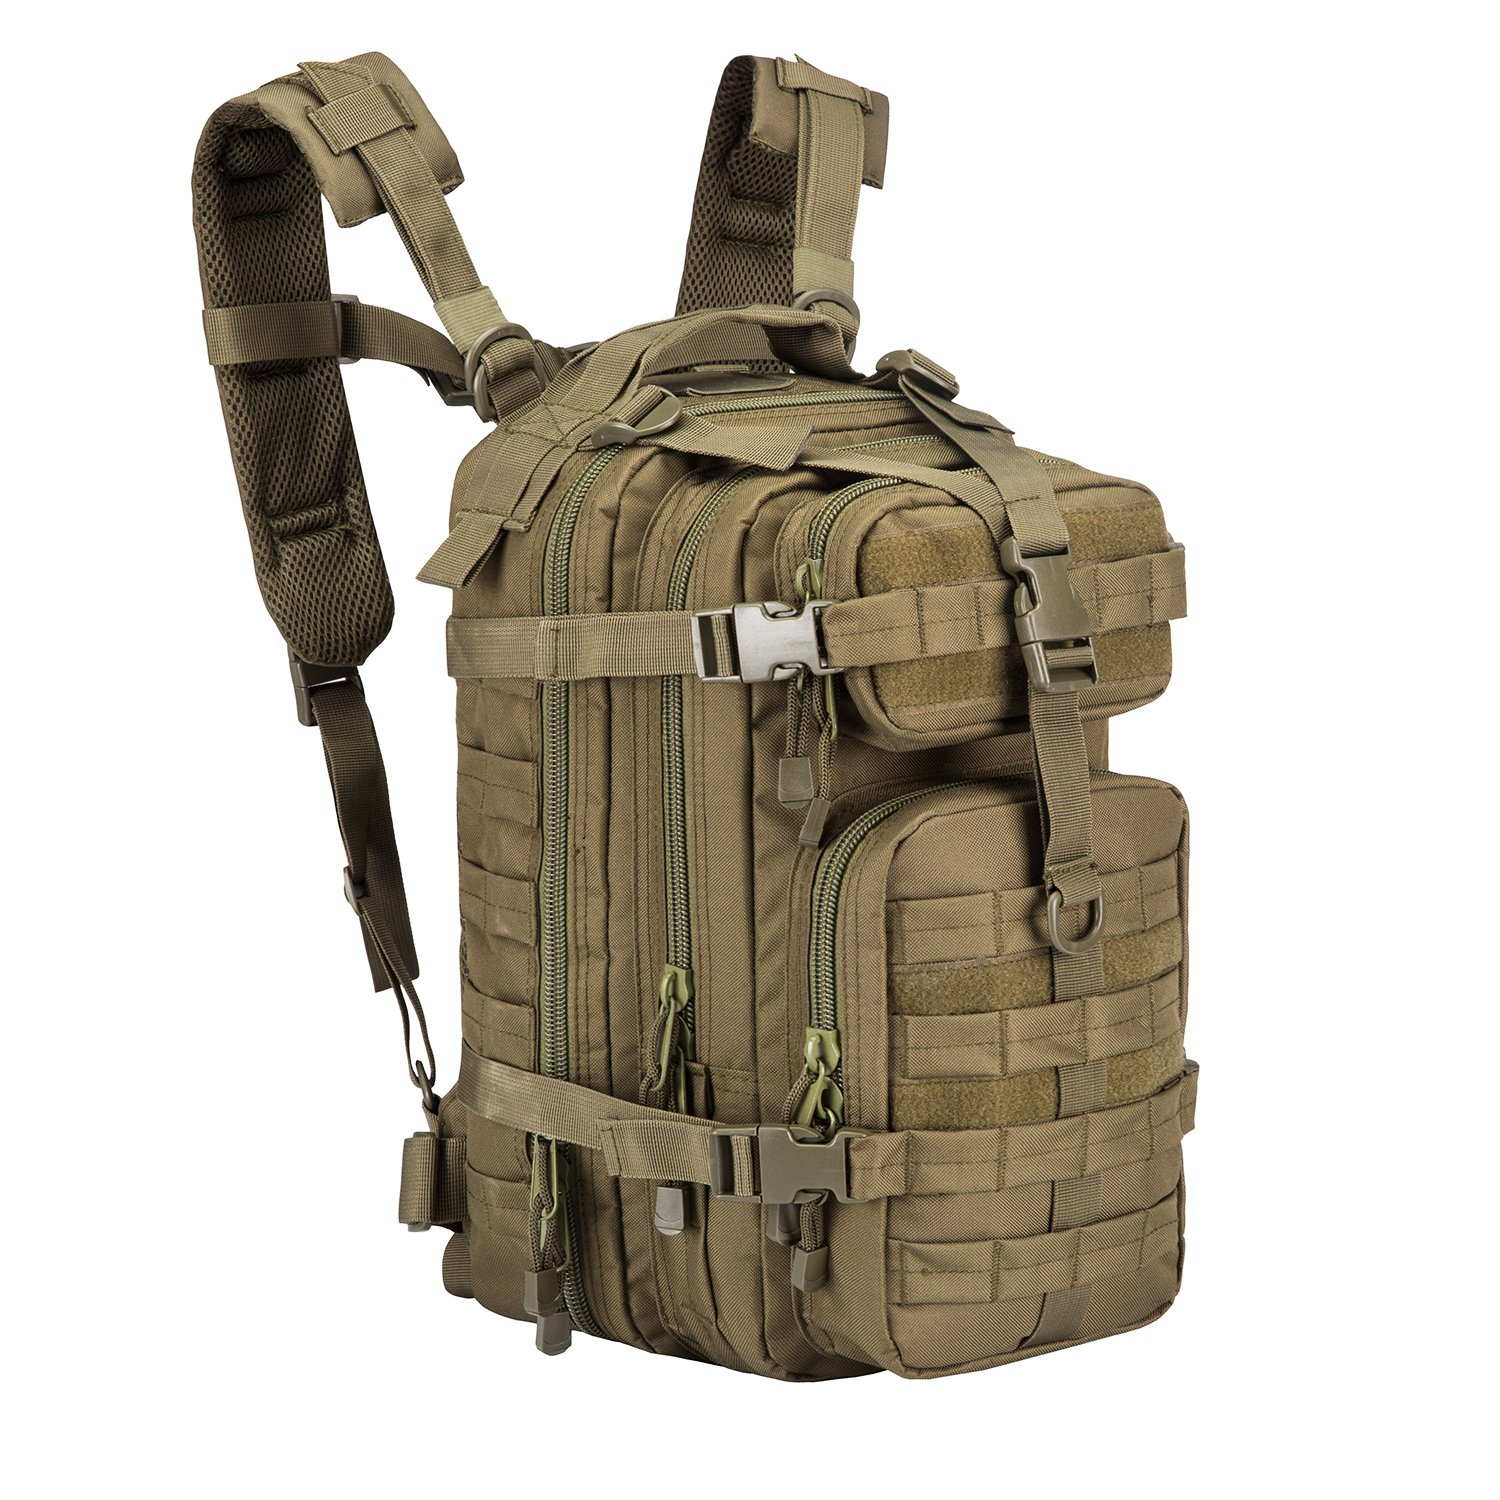 ARMYCAMOUSA Small Military Tactical Backpack, Army Molle Assault Rucksack Pack for Outdoors, Hiking, Camping, Trekking, Bug Out Bag & Travel